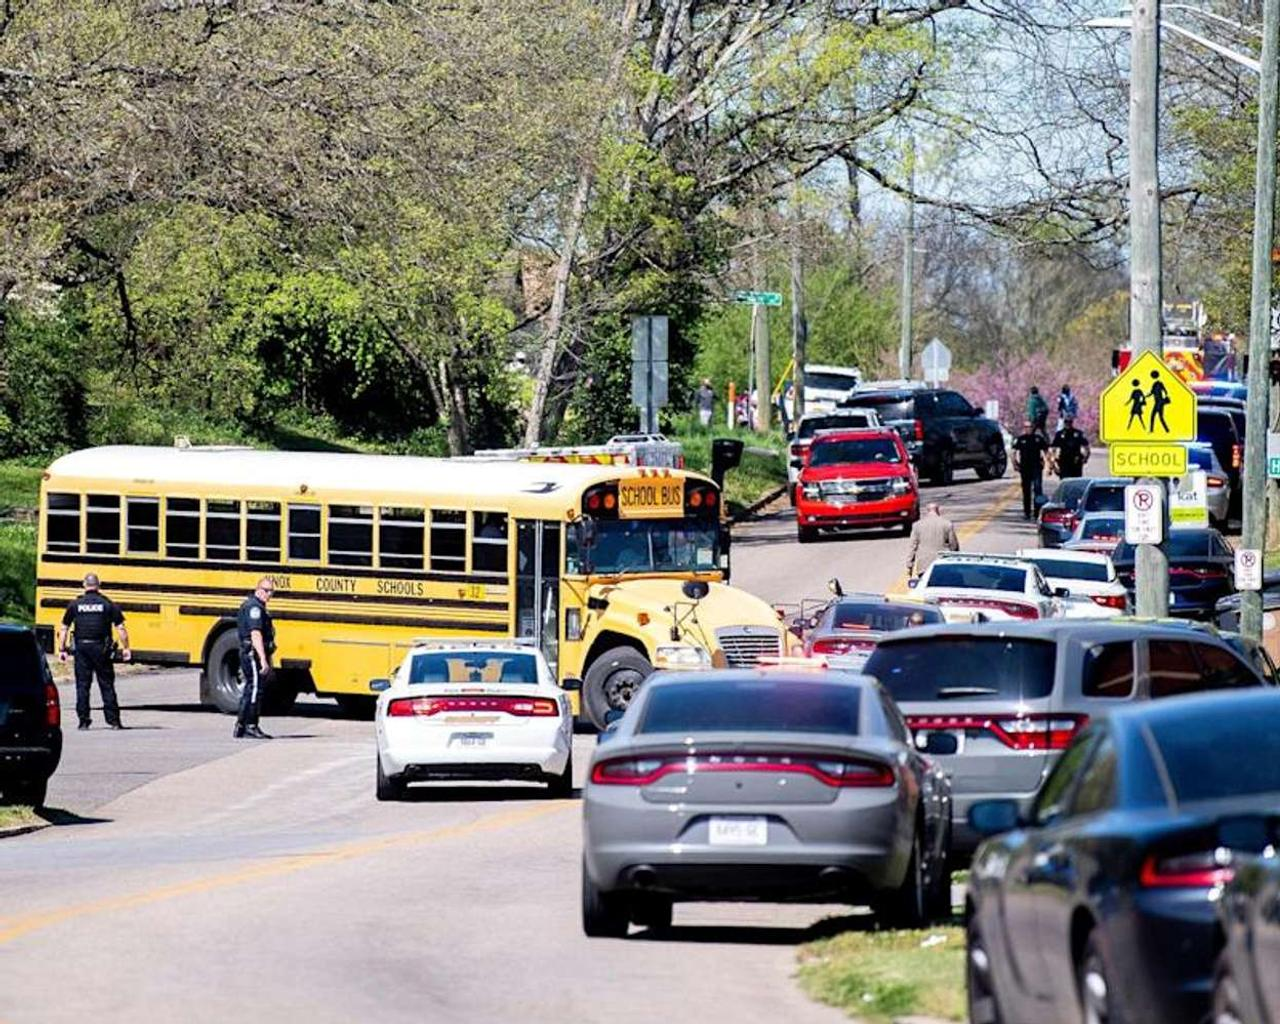 One student dead, officer injured after gunfire erupts at high school in Knoxville, Tennessee